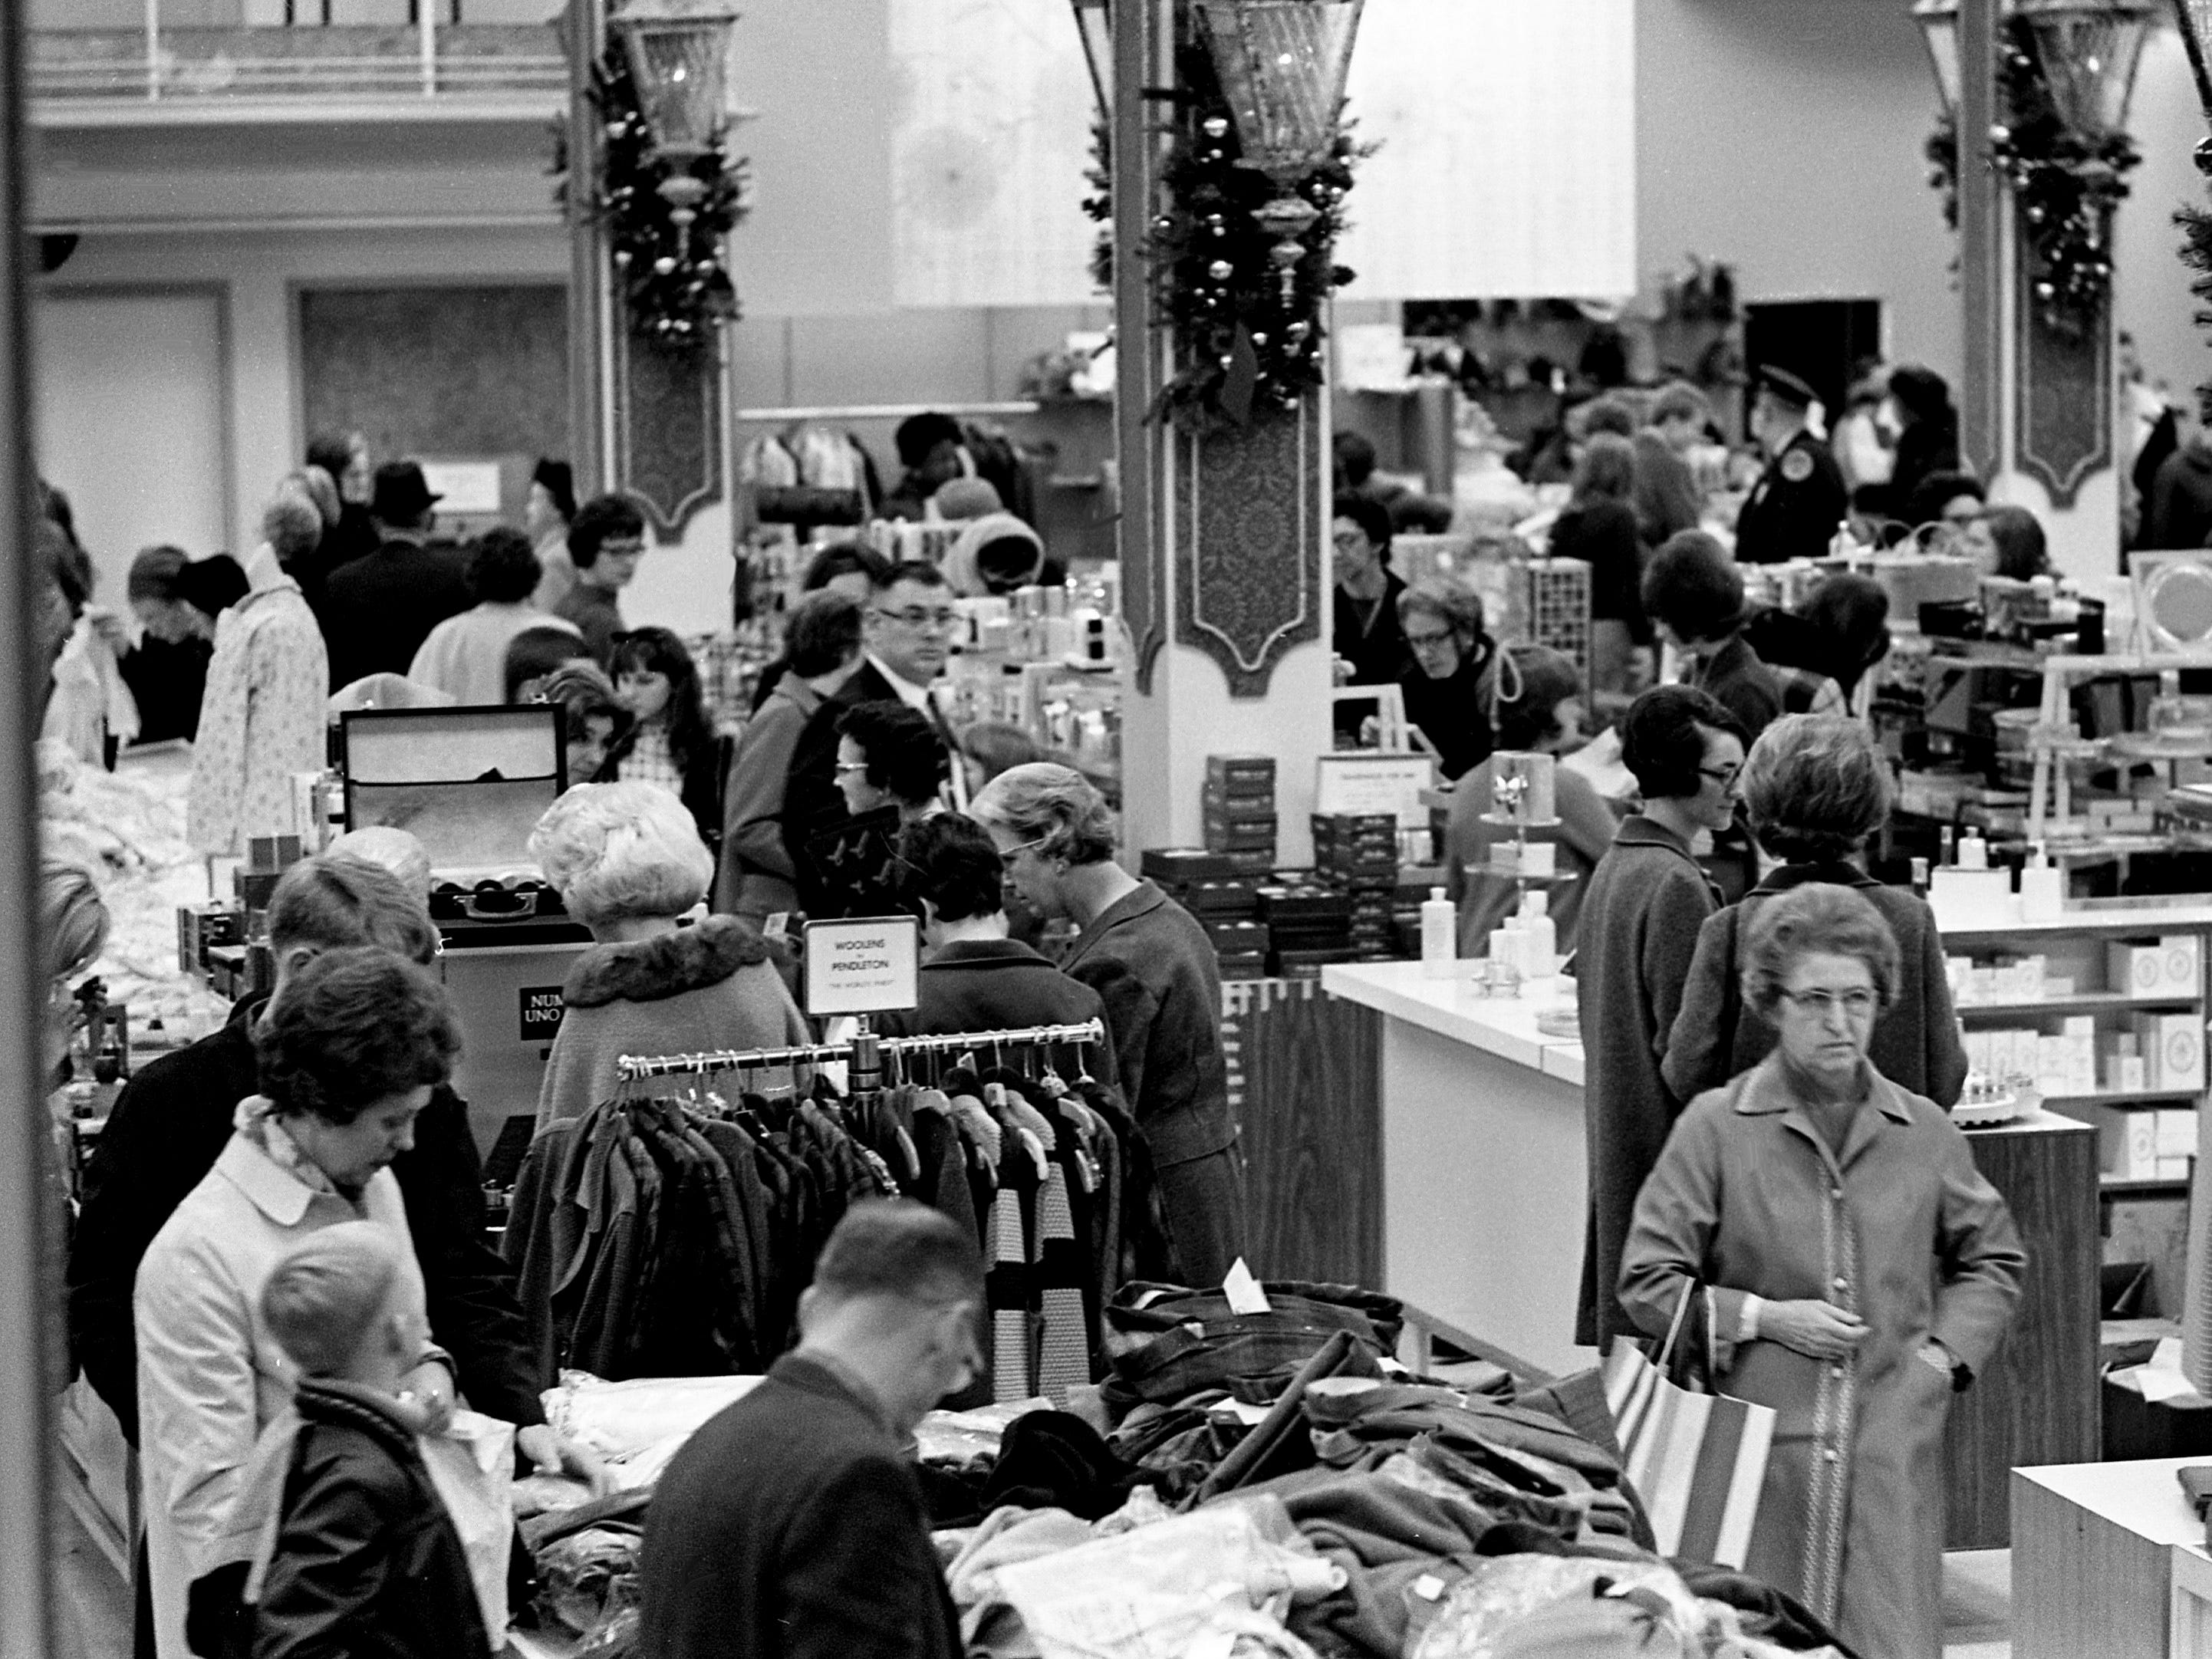 Shoppers are packing one of the downtown Nashville's department store on Church Street Dec. 7, 1968 for their Christmas shopping.